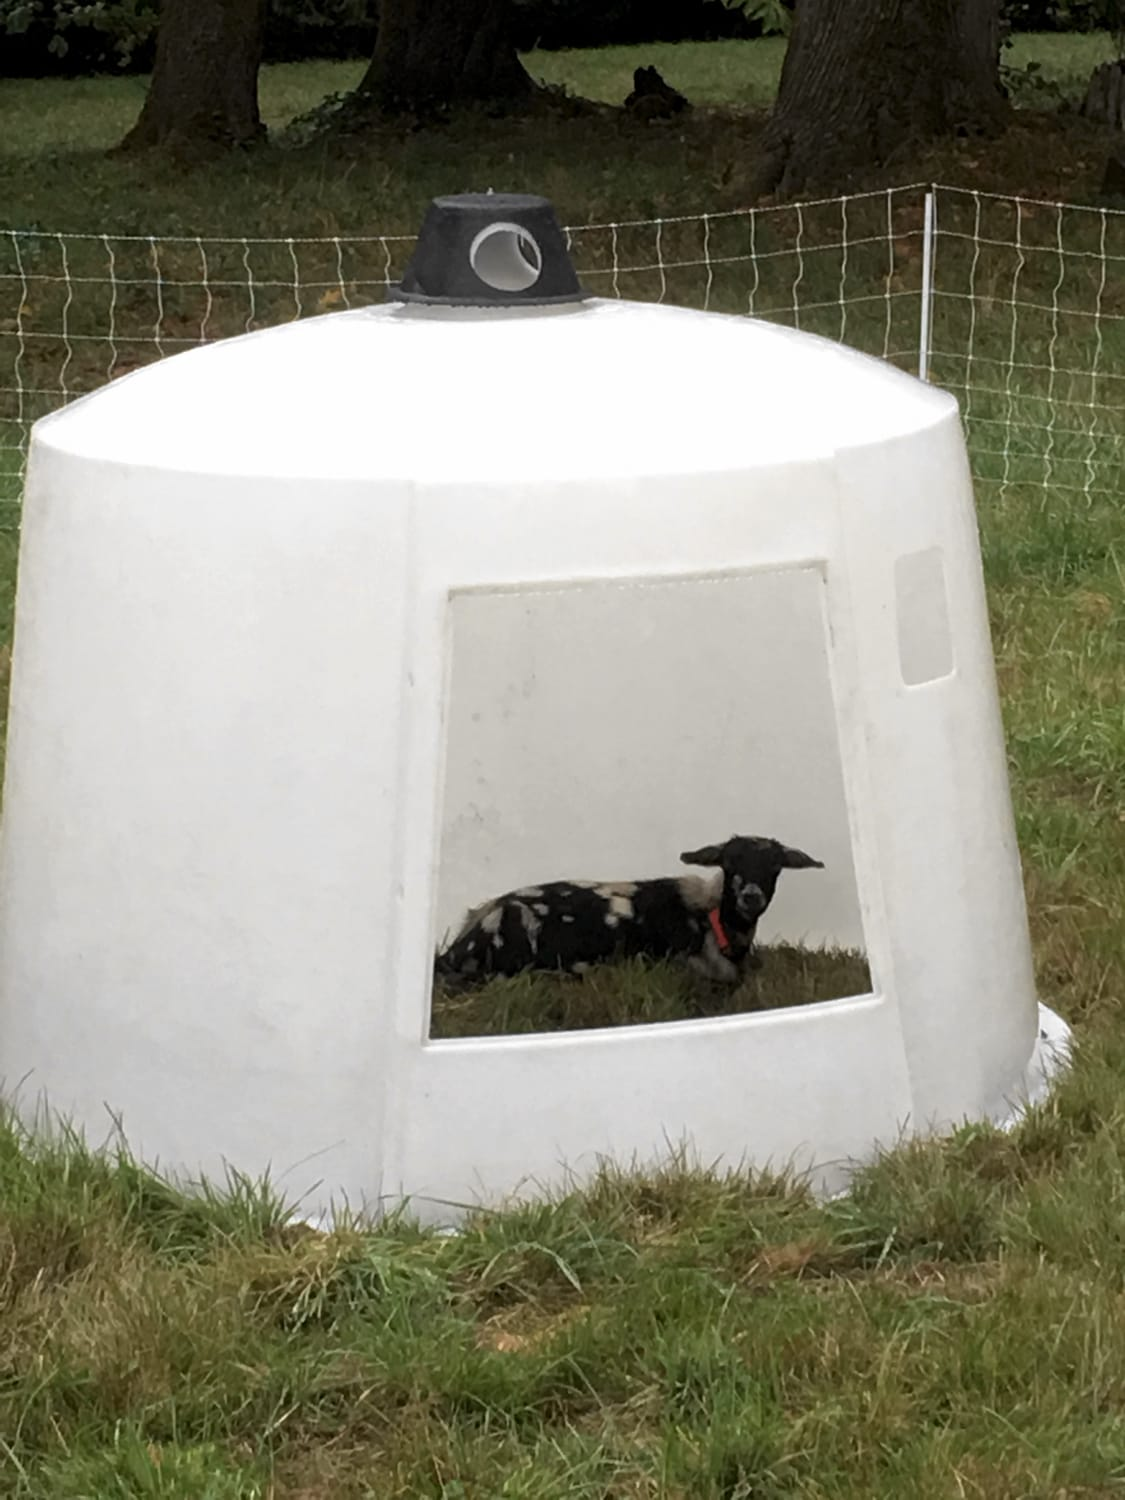 One of our goats relaxing in the PolyDome.